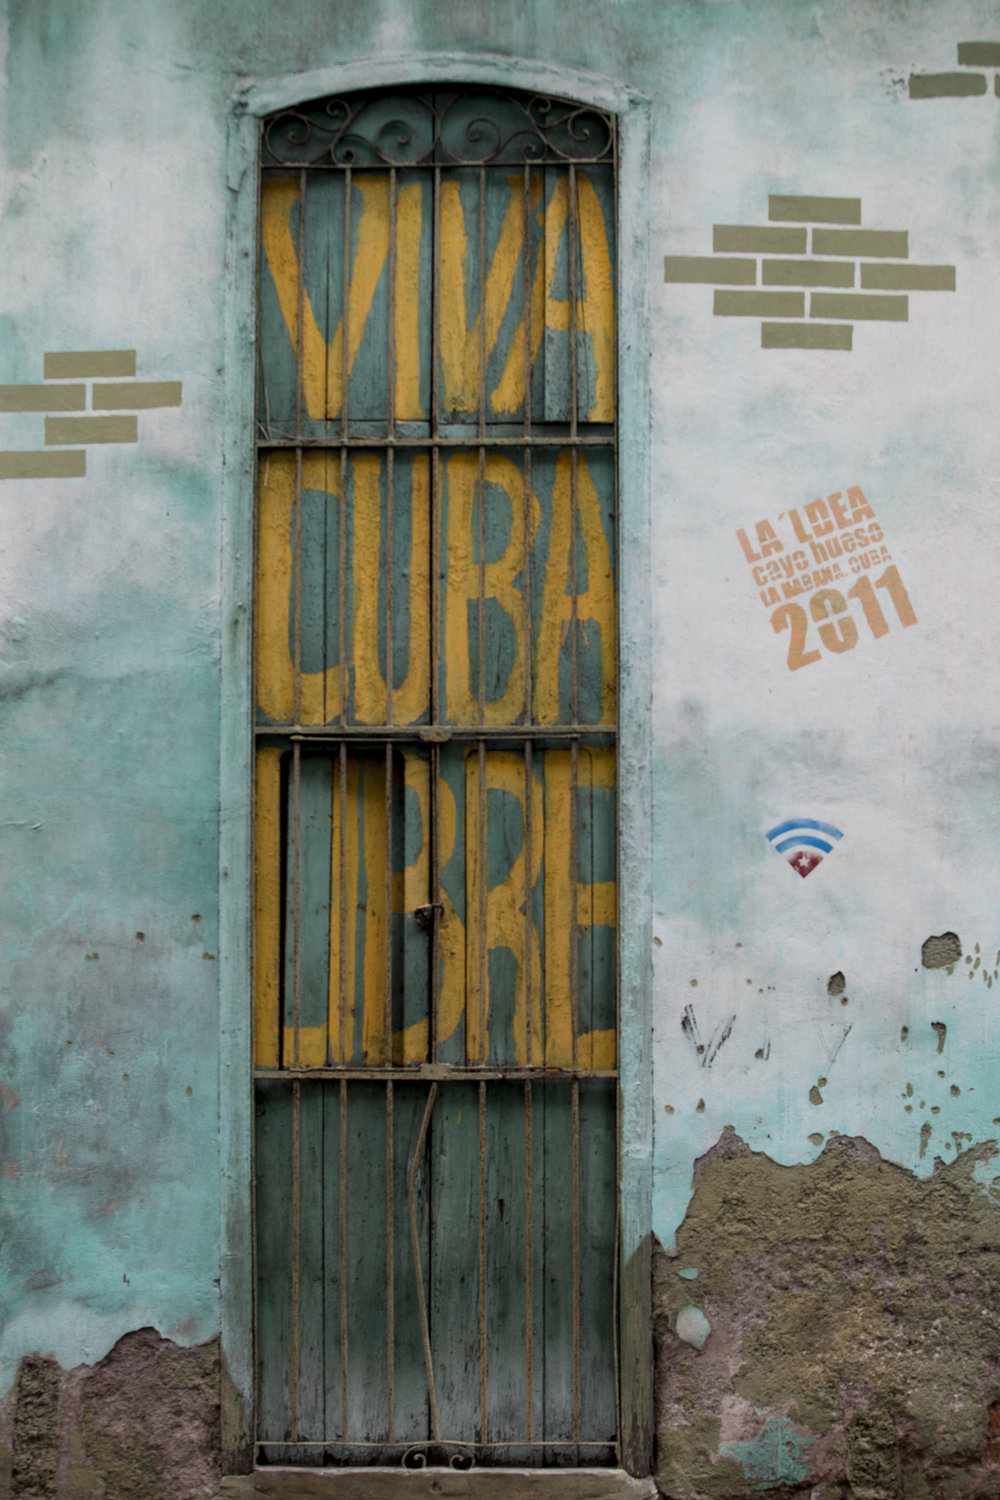 "VIVA CUBA LIBRE    ""Long Live Free Cuba"", a sentiment that dates back to the 1959 Revolution led by Fidel Castro, Raúl Castro and Che Guevara, paints the streets from the cities to the pueblos. Whether the saying has undergone semantic satiation is unknown. Gracing walls, billboards, and rural roadsides, words of the revolution era remain a significant part of everyday environments in Cuba. As we wandered the streets, we questioned whether the repetition has removed some of the original meaning or instead instilled a greater sense of national pride."